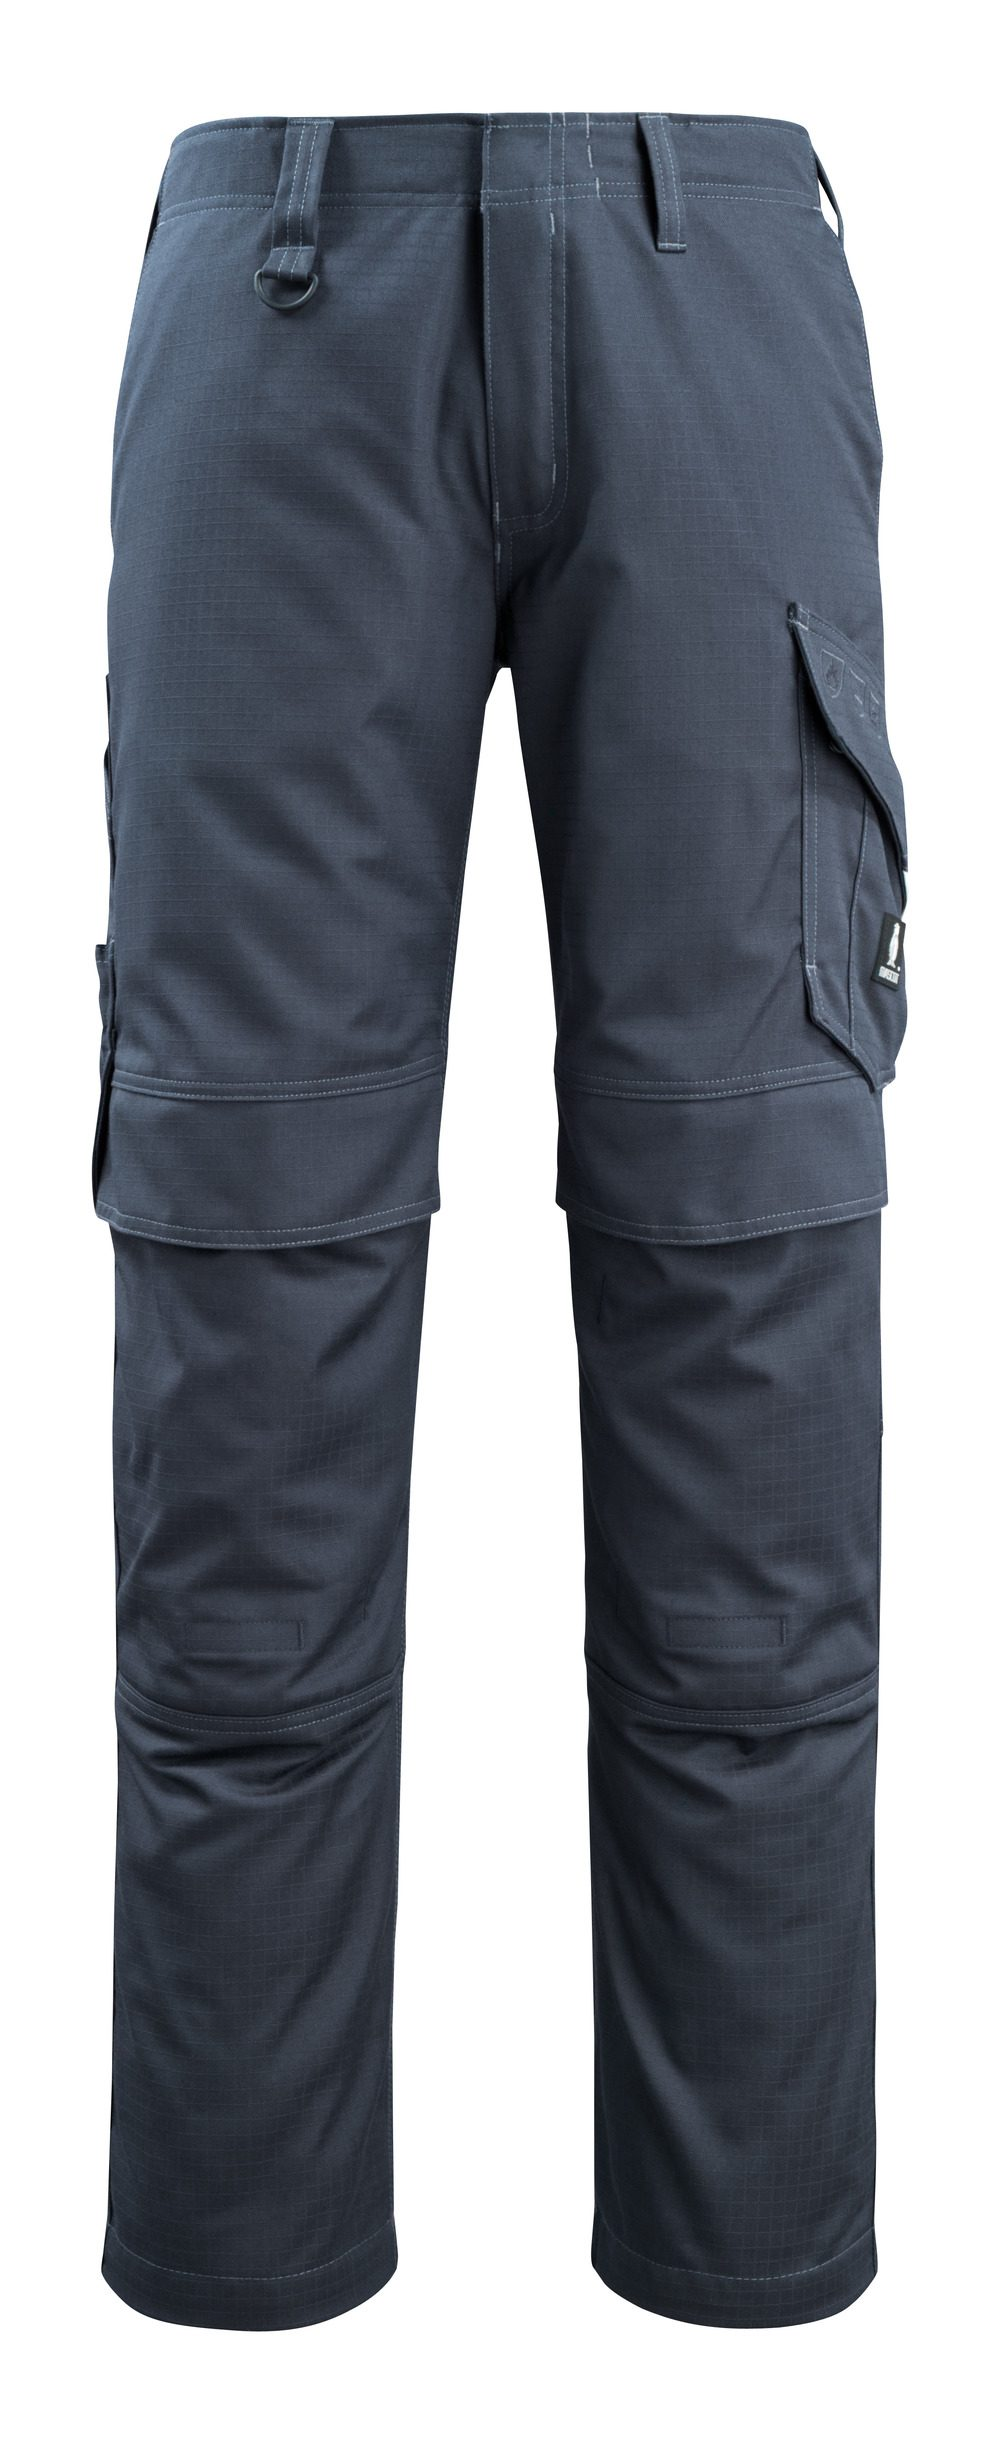 MASCOT AROSA 7.7 CAL/CM2 FLAME RETARDANT PANTS WITH KNEEPAD POCKETS